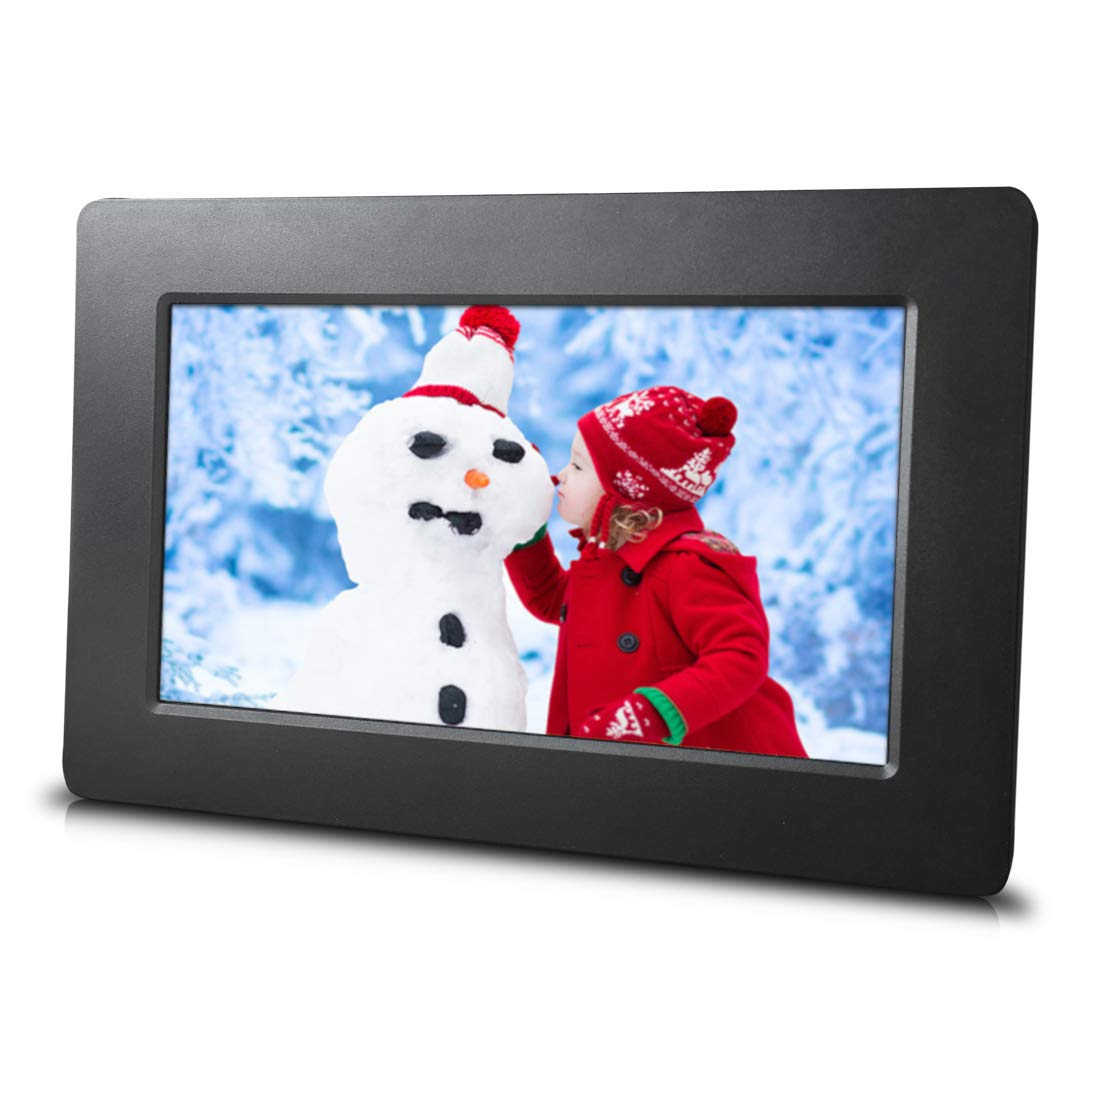 7 inch Digital Picture Frame - Simple to use - HD Screen - USB and SD Card Support - Best Frame for Slideshows by Sungale